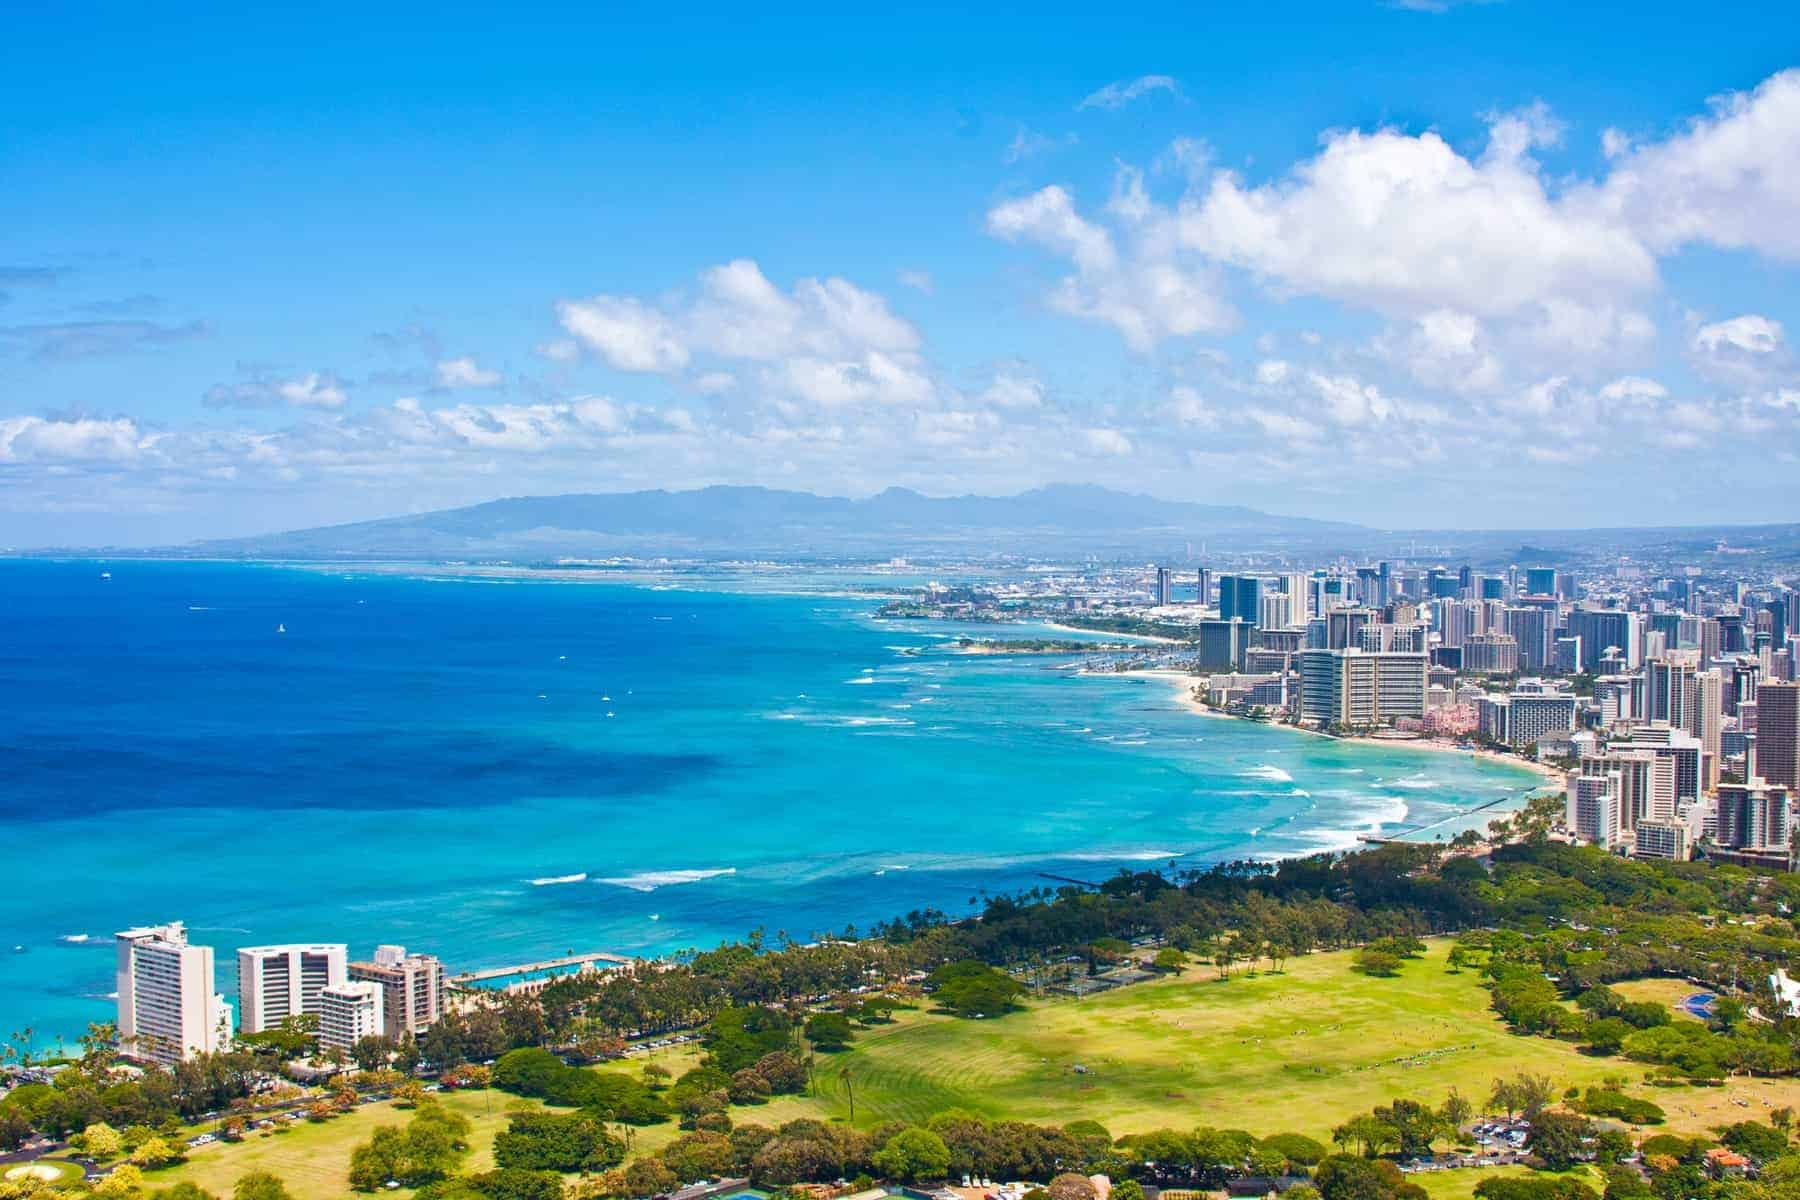 Oahu skyline, Hawaii